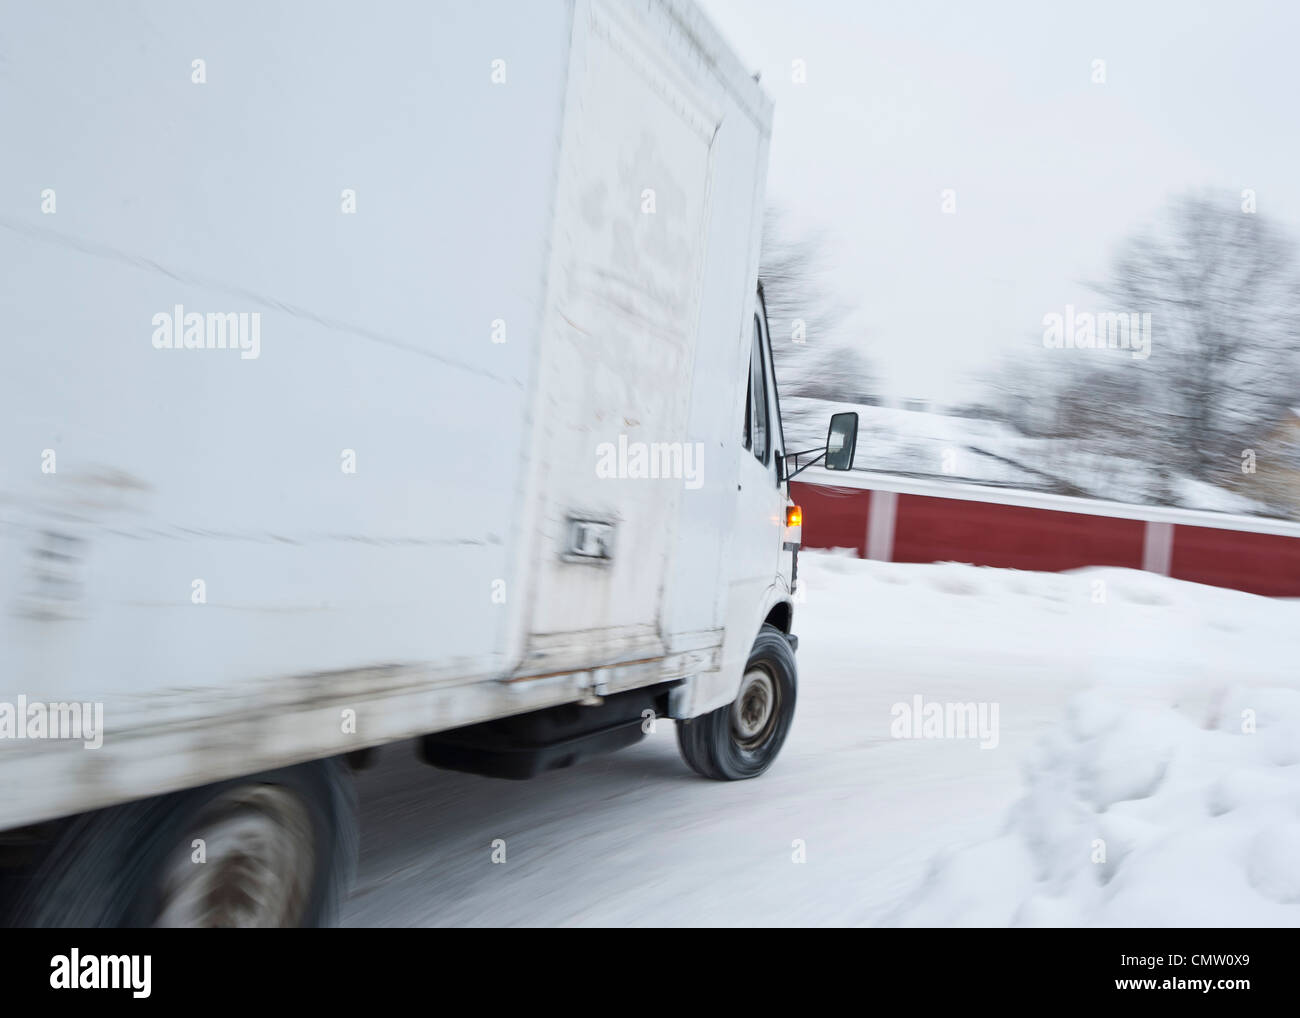 Pickup truck on the go - Stock Image